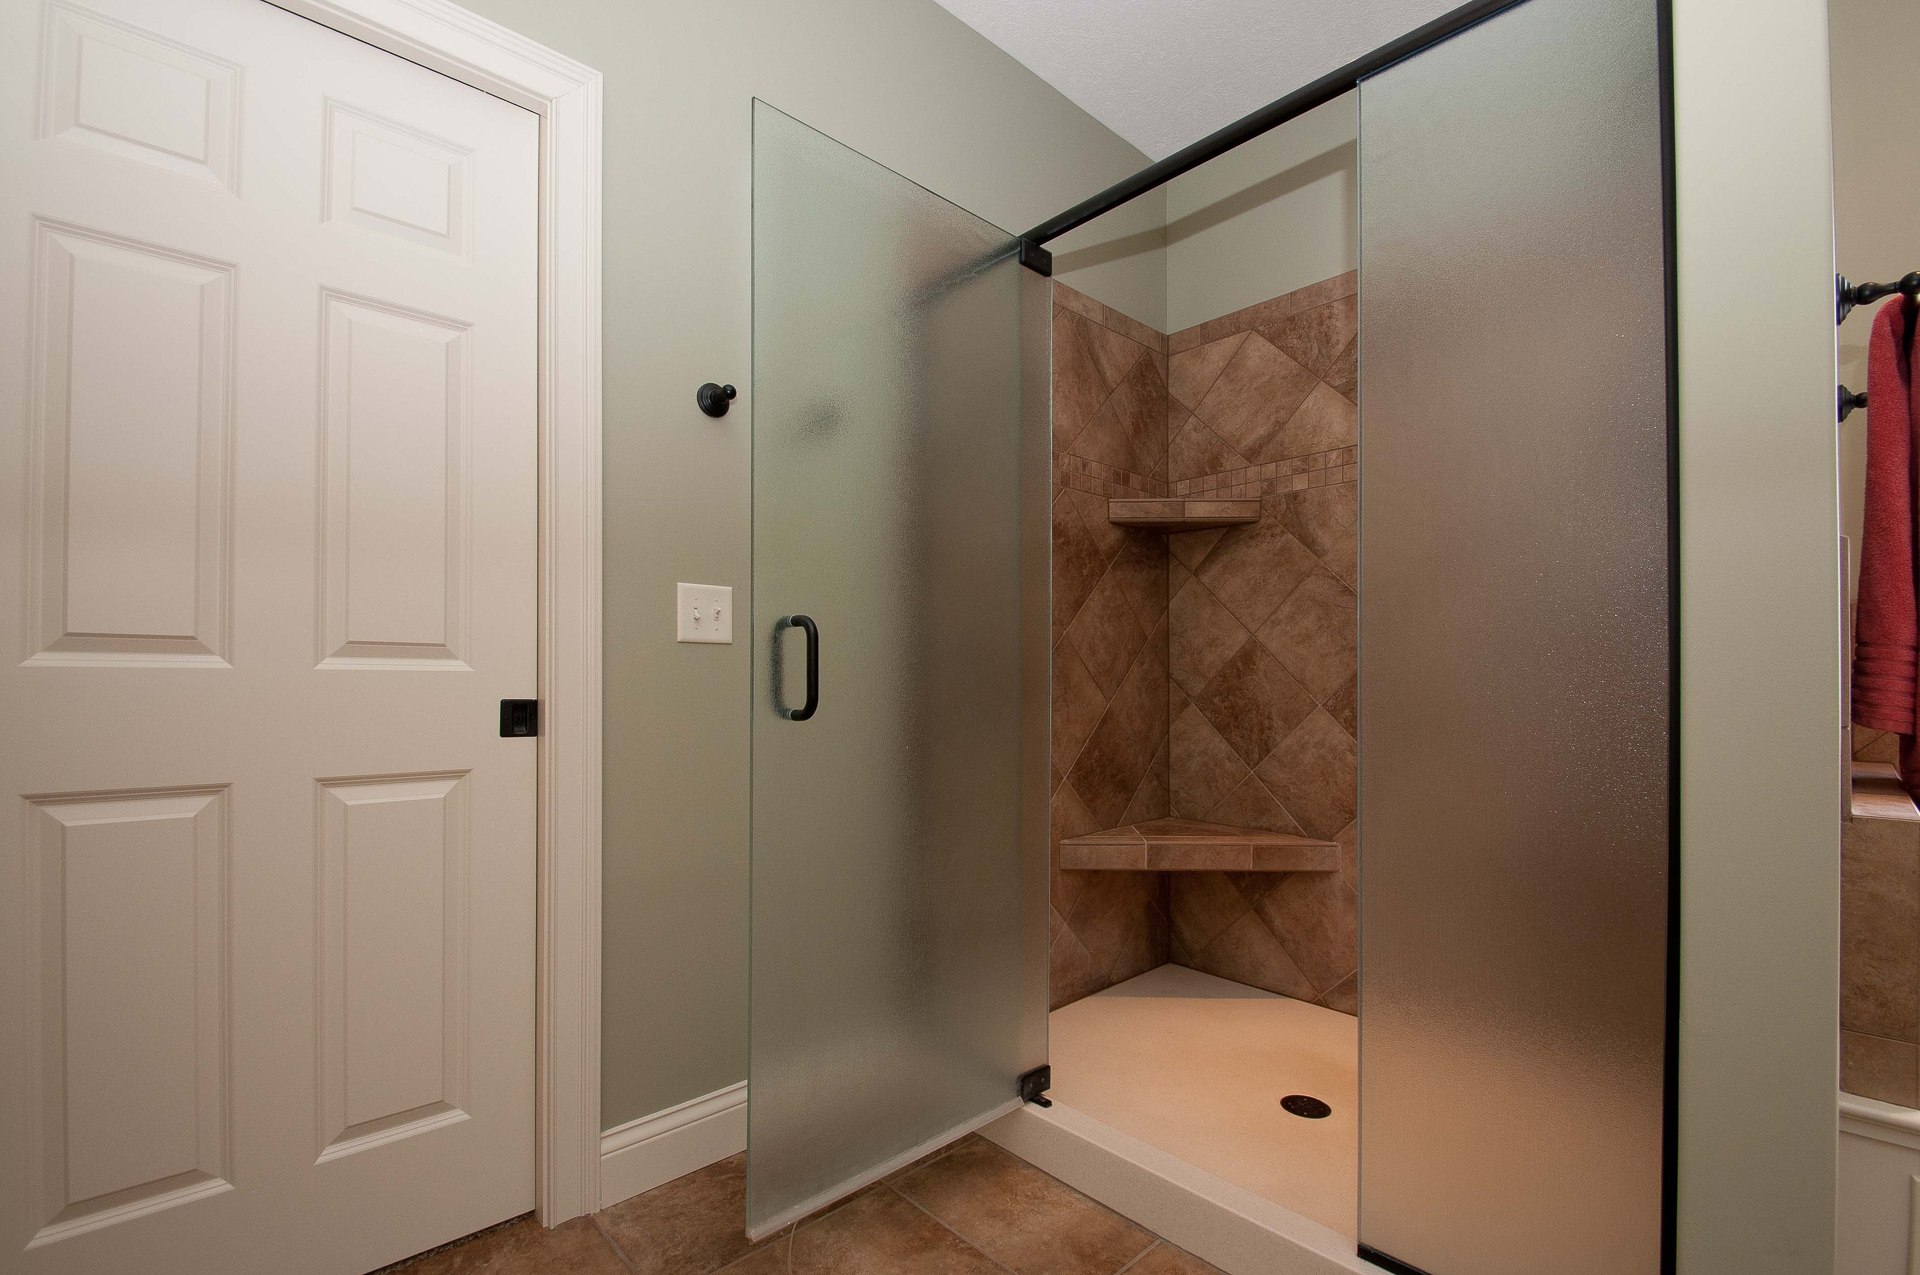 Ceramic shower with shelves and seat and obscure glass door